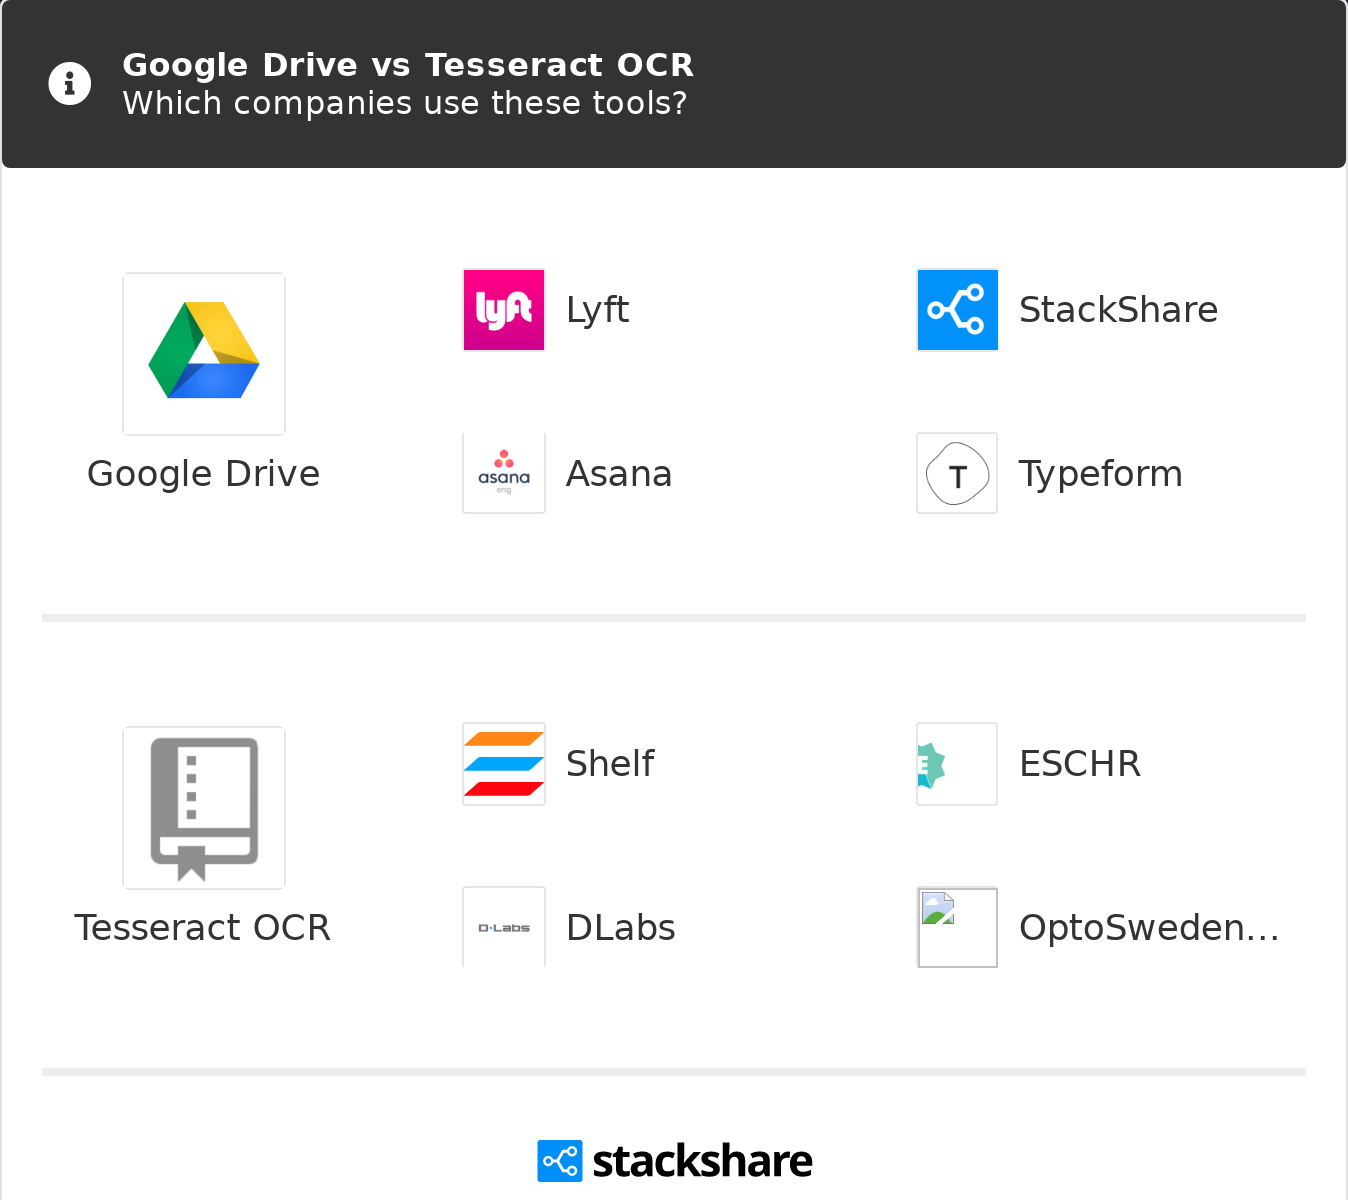 Google Drive vs Tesseract OCR | What are the differences?